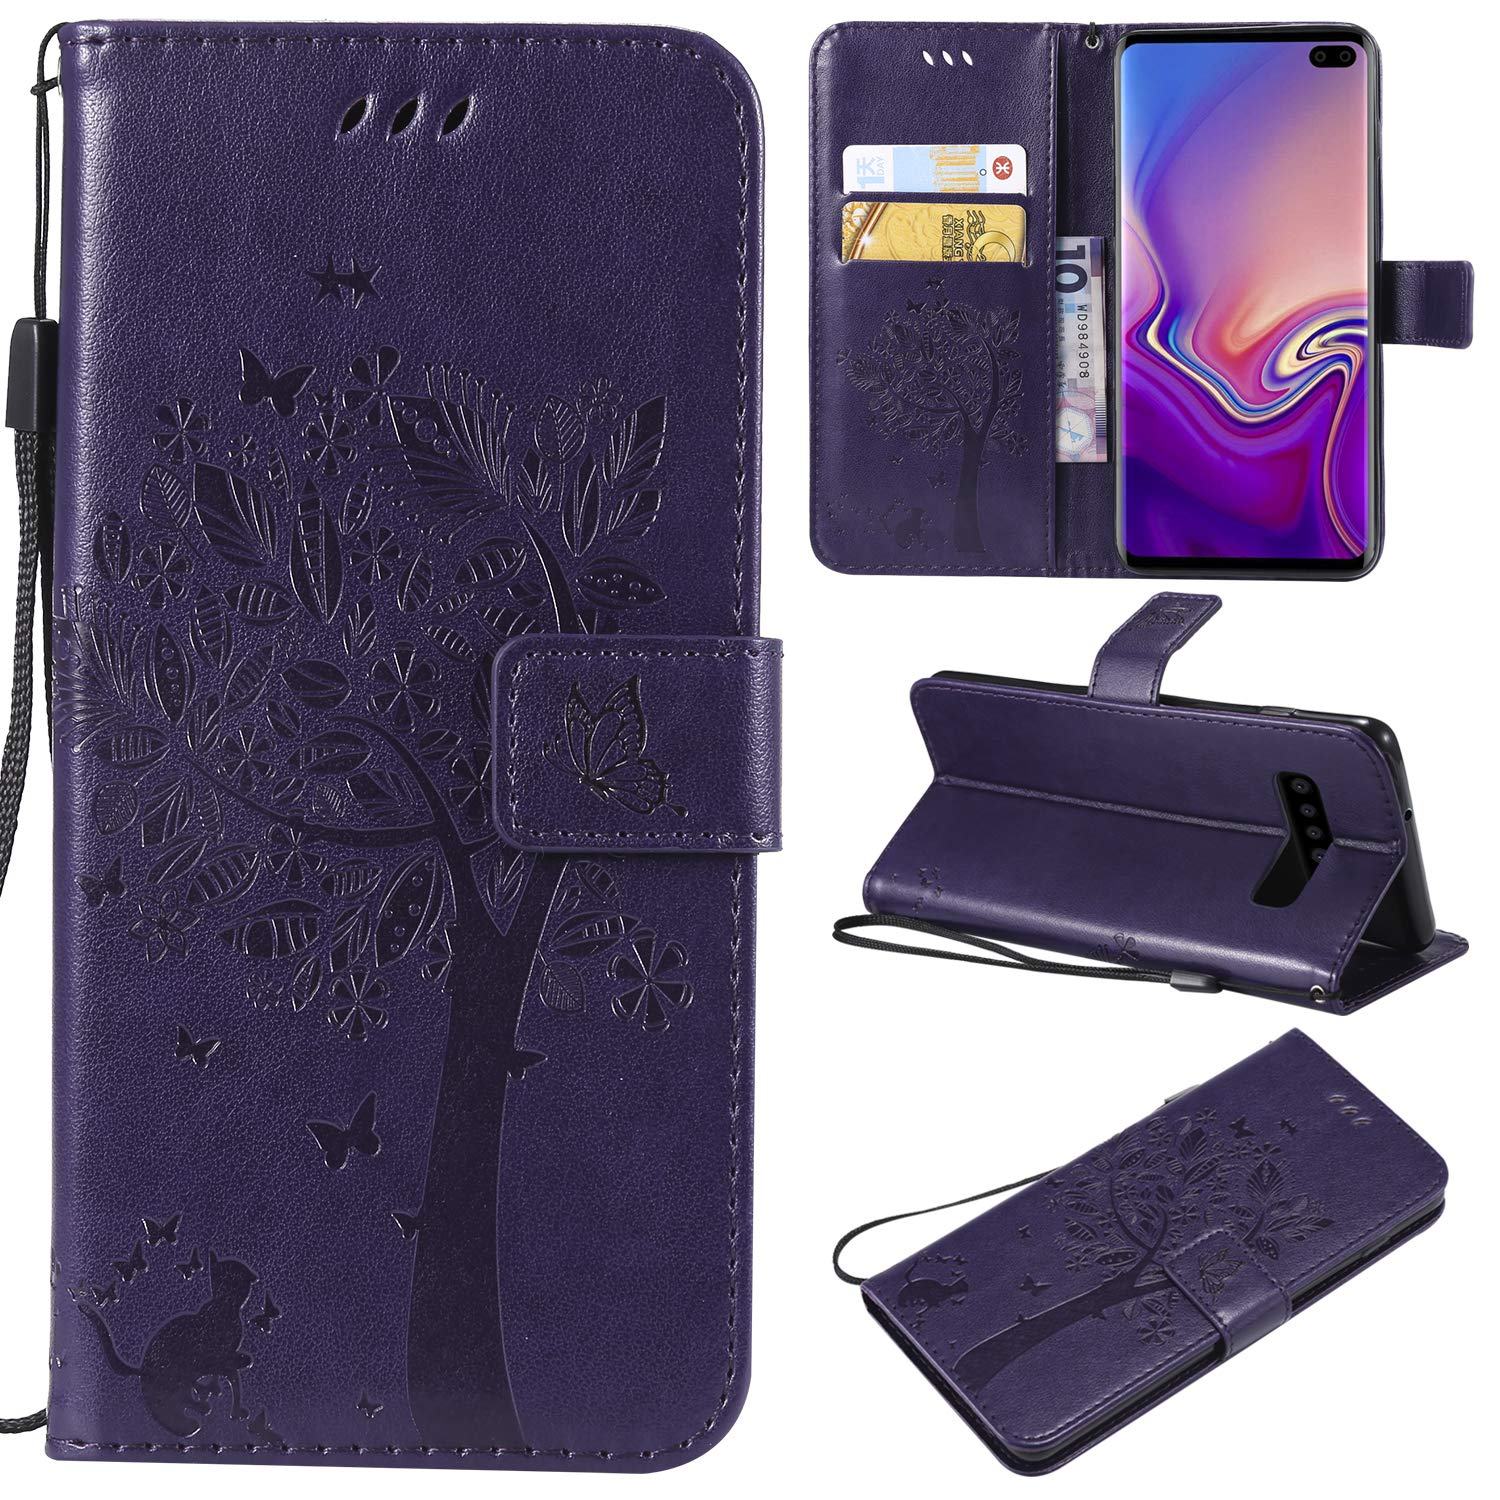 Galaxy S10 Plus Case,Samsung S10 Plus Case,Wallet Case,PU Leather Case Floral Tree Cat Embossed Purse with Kickstand Flip Cover Card Holders Hand Strap for Samsung Galaxy S10 Plus Purple